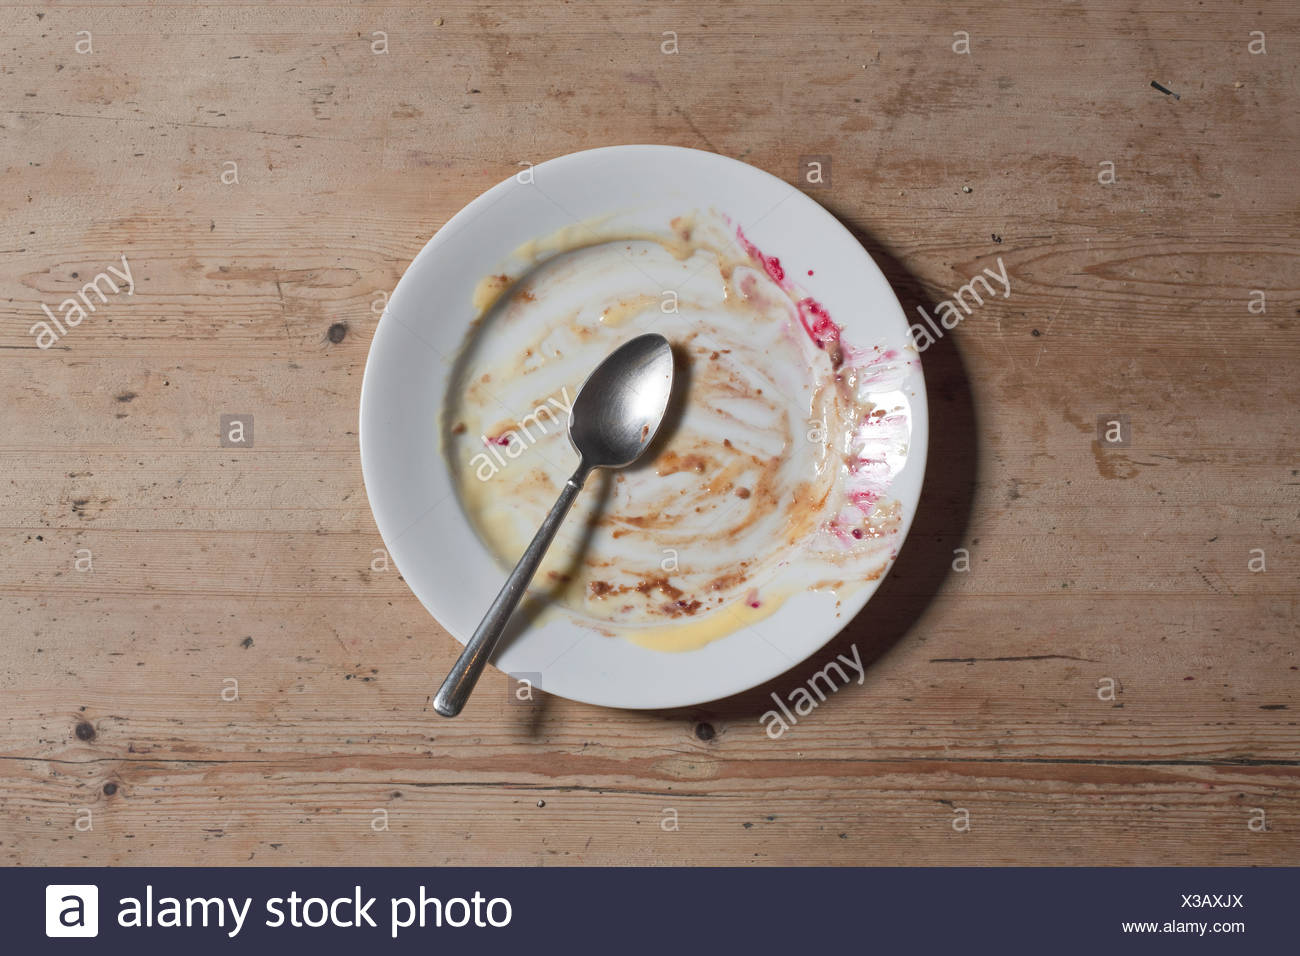 Remains of eaten pudding on plate - Stock Image